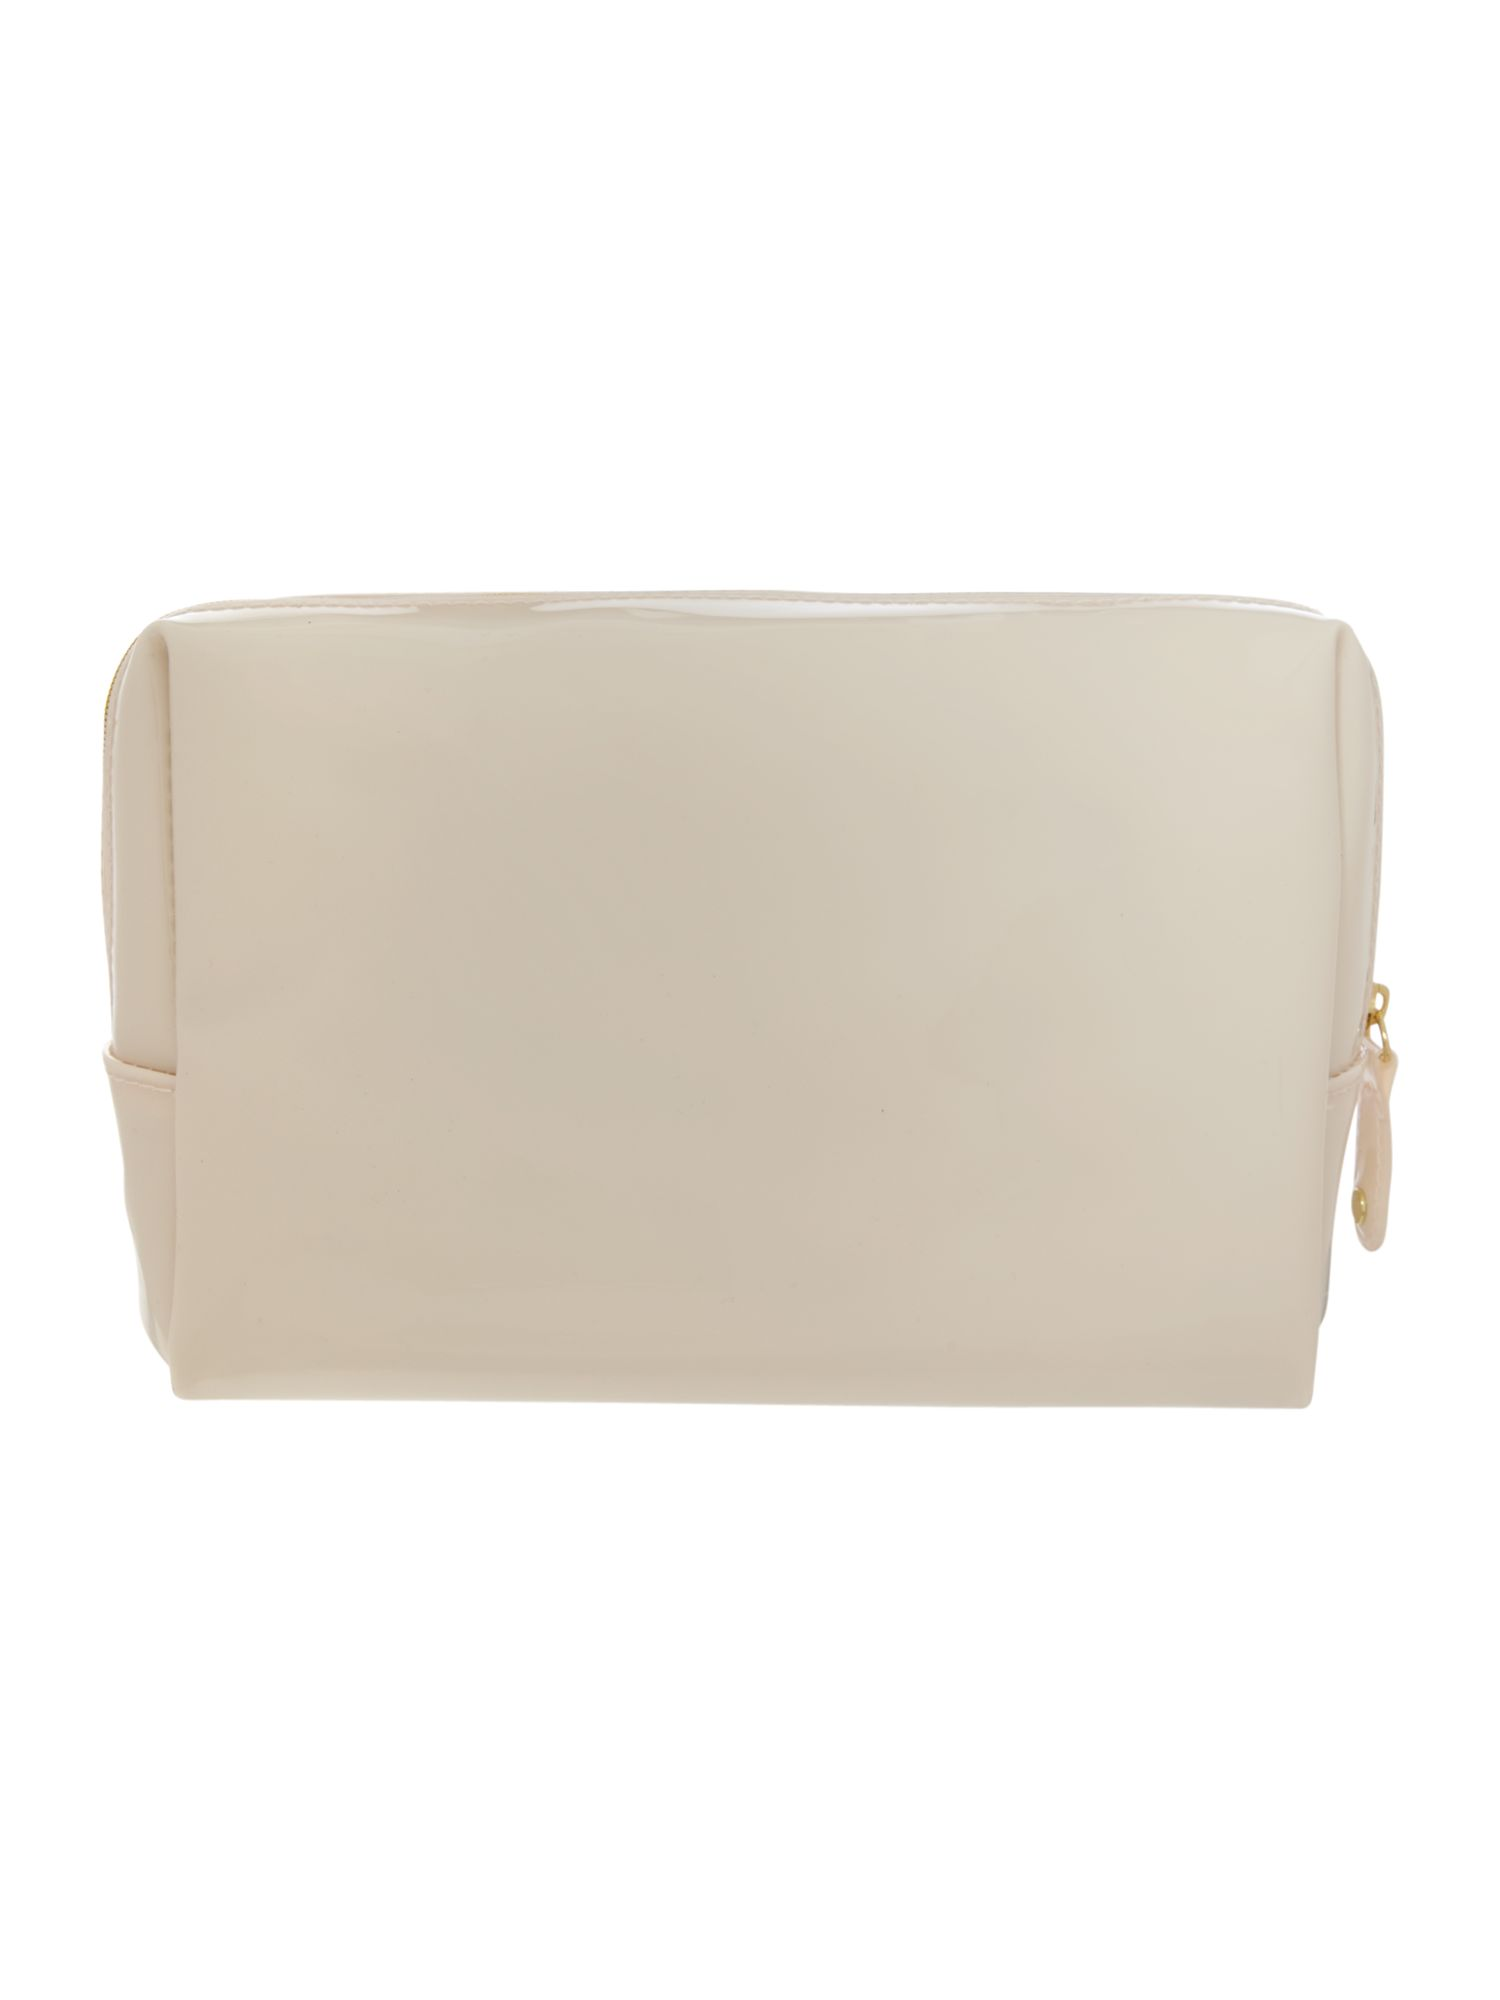 Nude large bowcon cosmetic bag